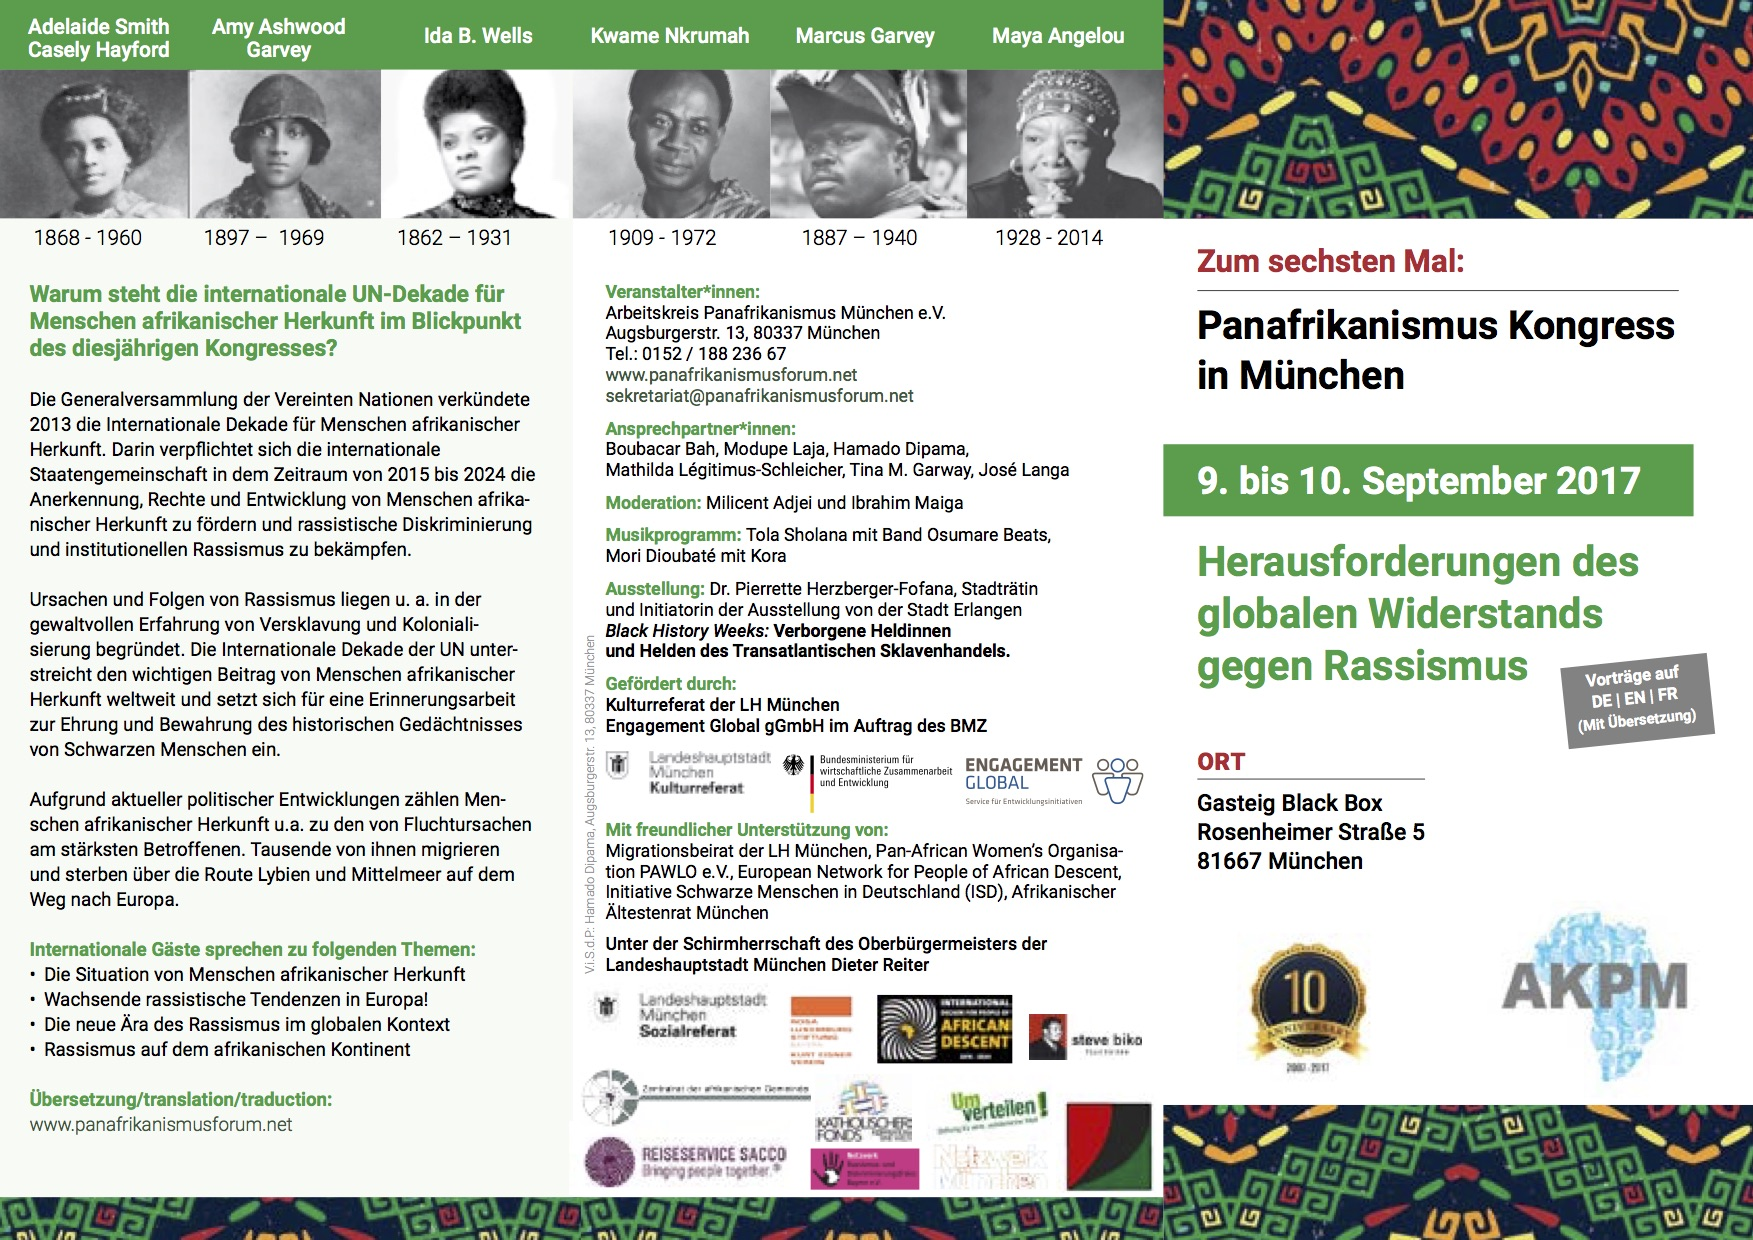 files/Massnahmen 2017/Flyer.Panafrikanismus Kongress 9. + 10.9.17.jpg